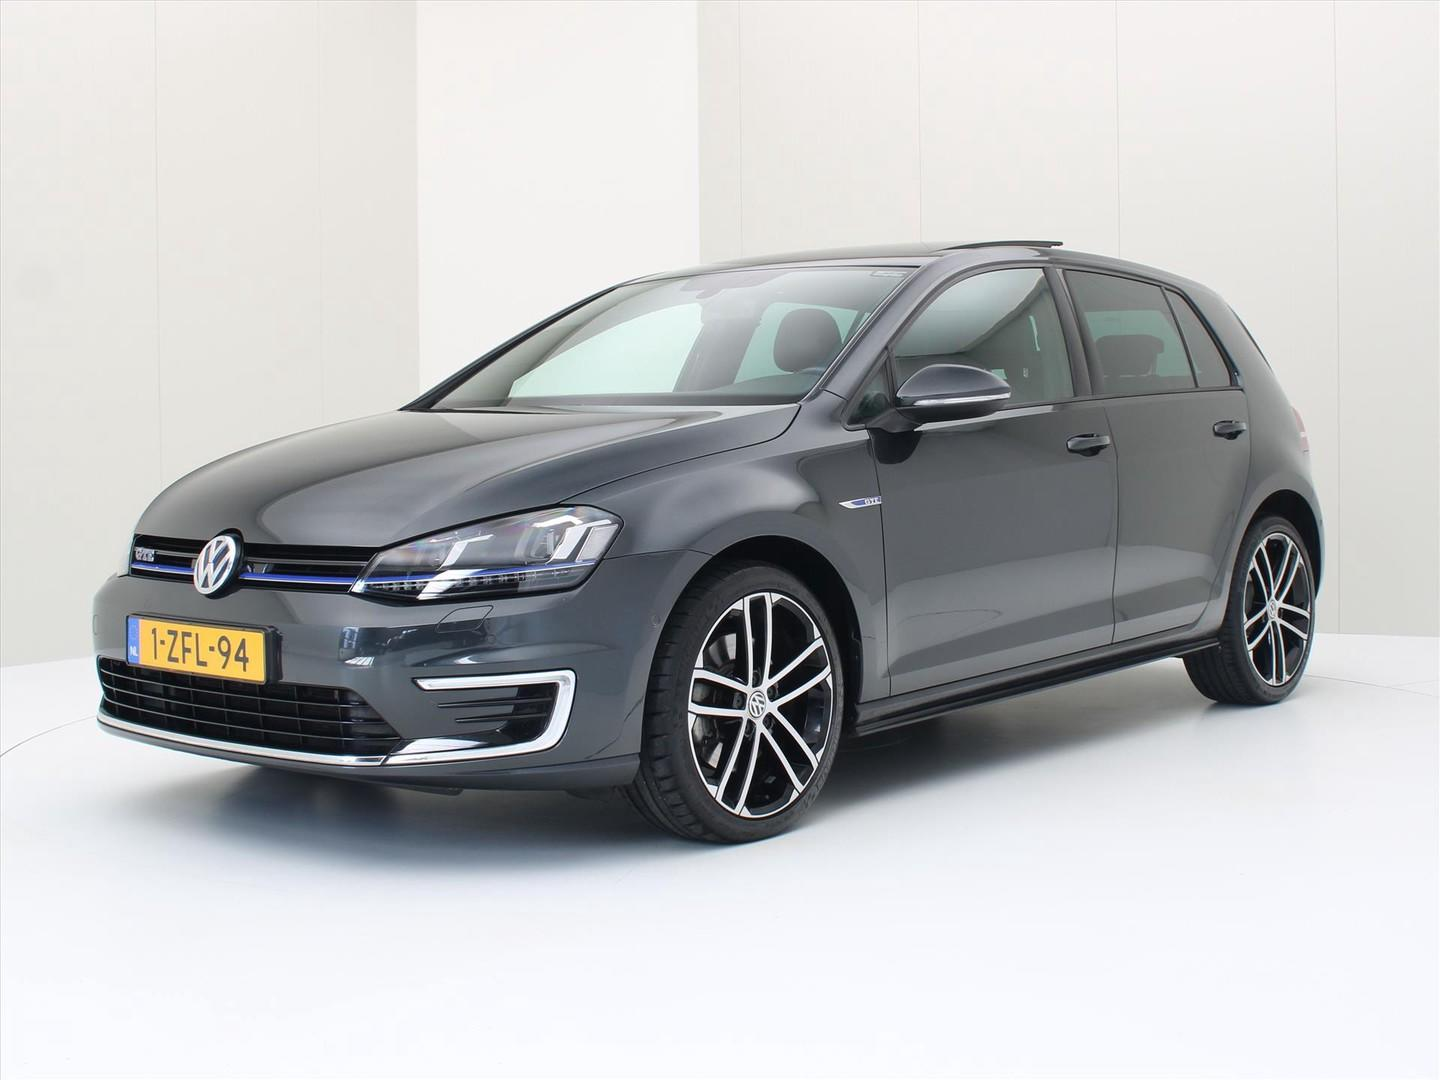 Volkswagen Golf 1.4 tsi phev 204pk dsg gte executive plus [ panodak+leder+camera+trekhaak ]